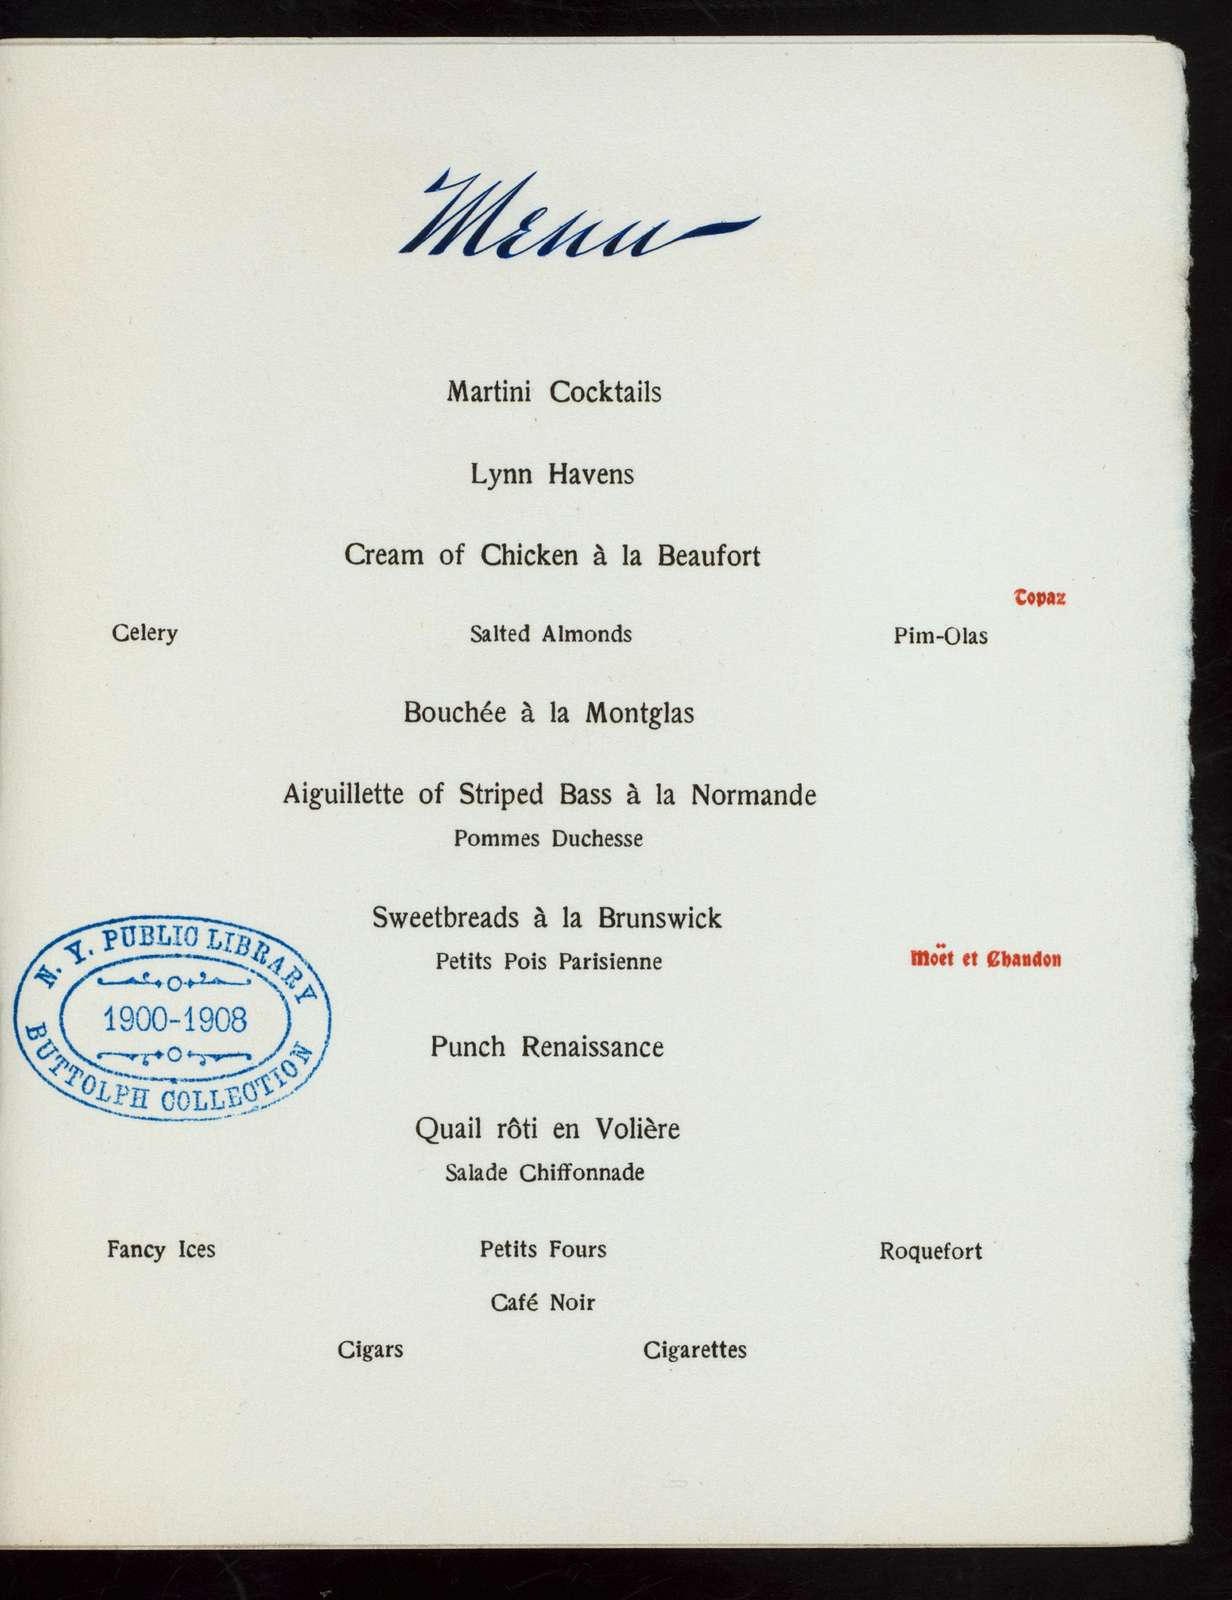 """FELLOWSHIP BANQUET [held by] COLUMBIA GOLF CLUB [at] """"THE RALEIGH, WASHINGTON, D.C."""" (HOTEL;)"""